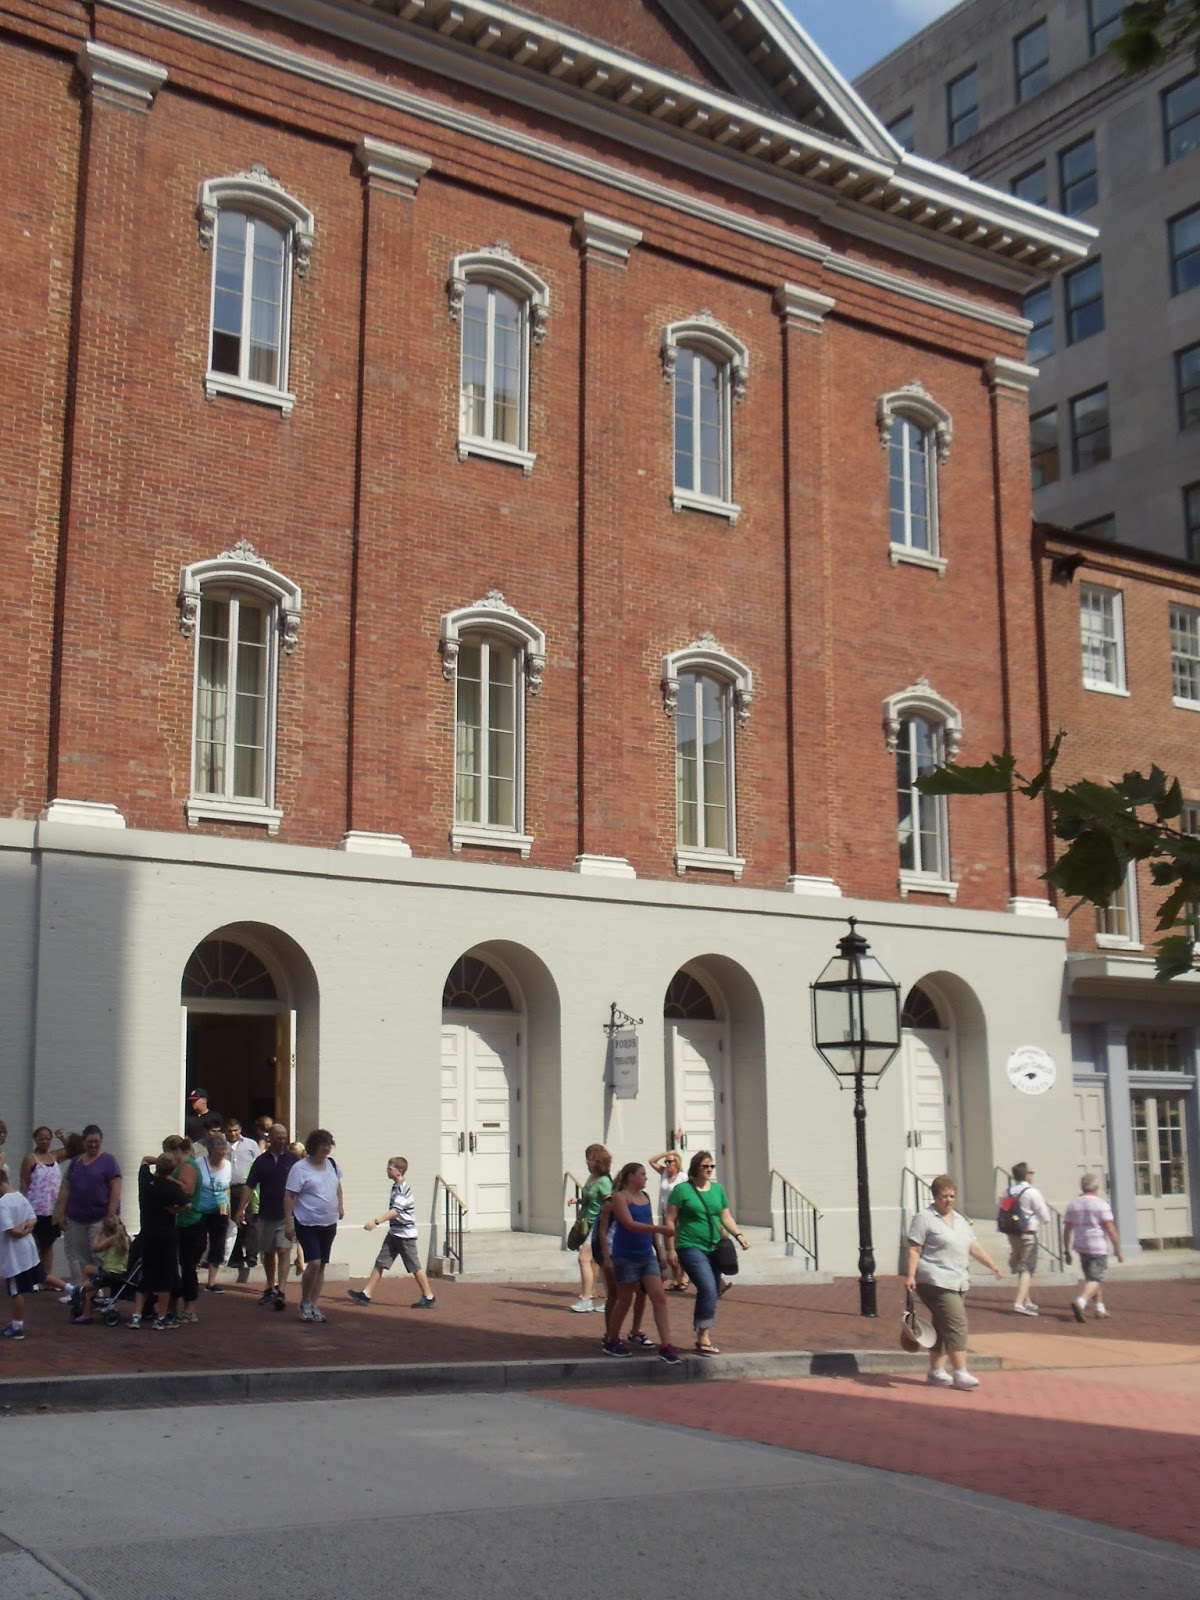 10 interesting facts about ford's theatre | things to see and do